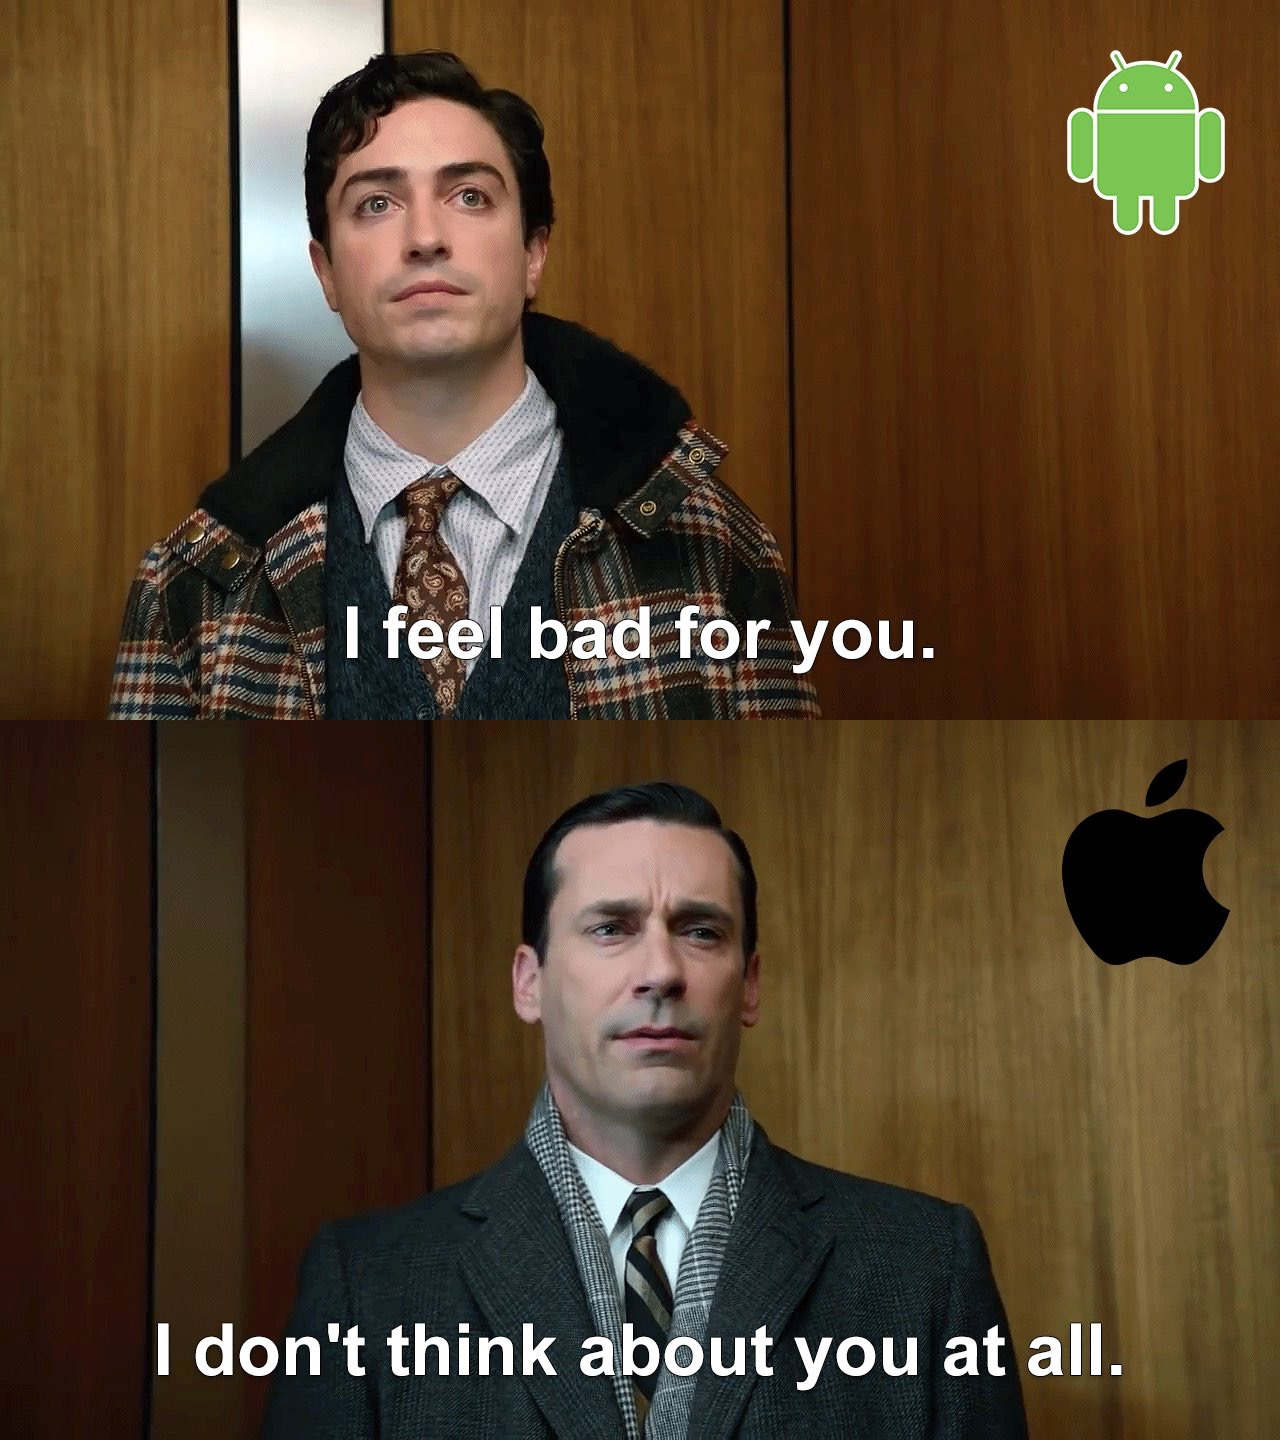 iPhone slays Android Mad Men meme